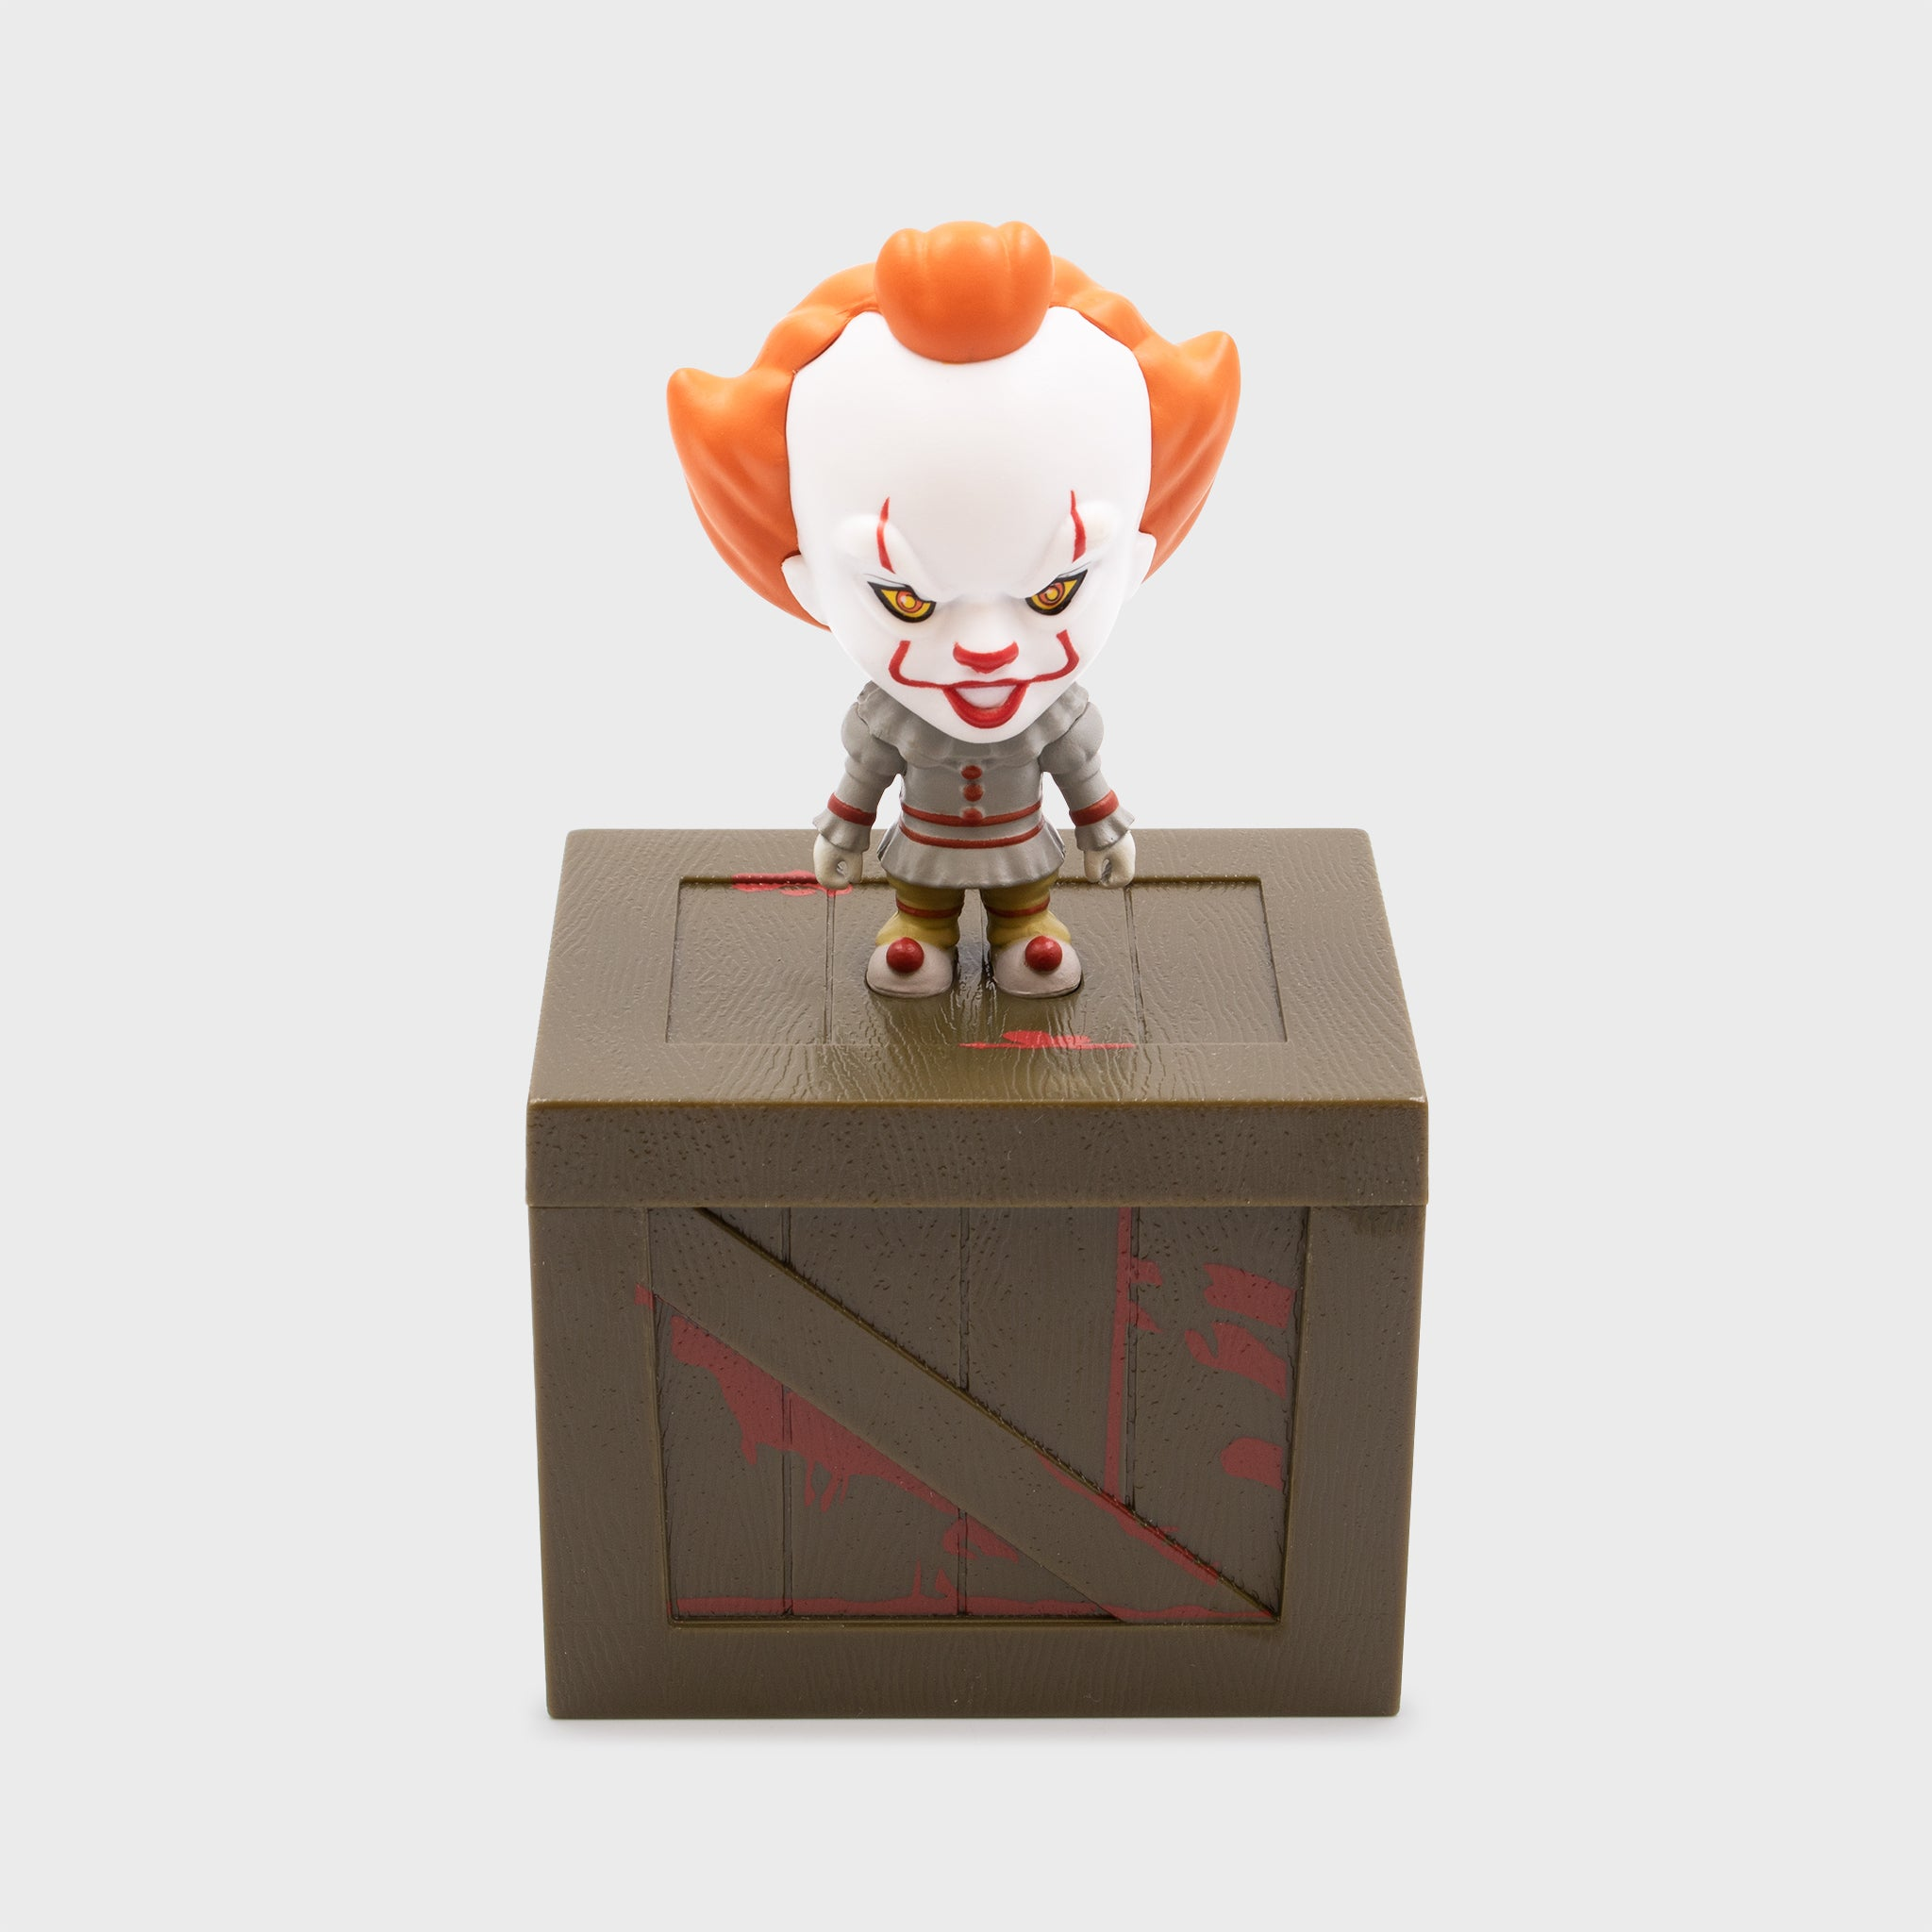 smols culturefly horror movies films classics monsters scary it annabelle exorcist the shining the nun pennywise collectibles blind bags mystery mini figurines collection